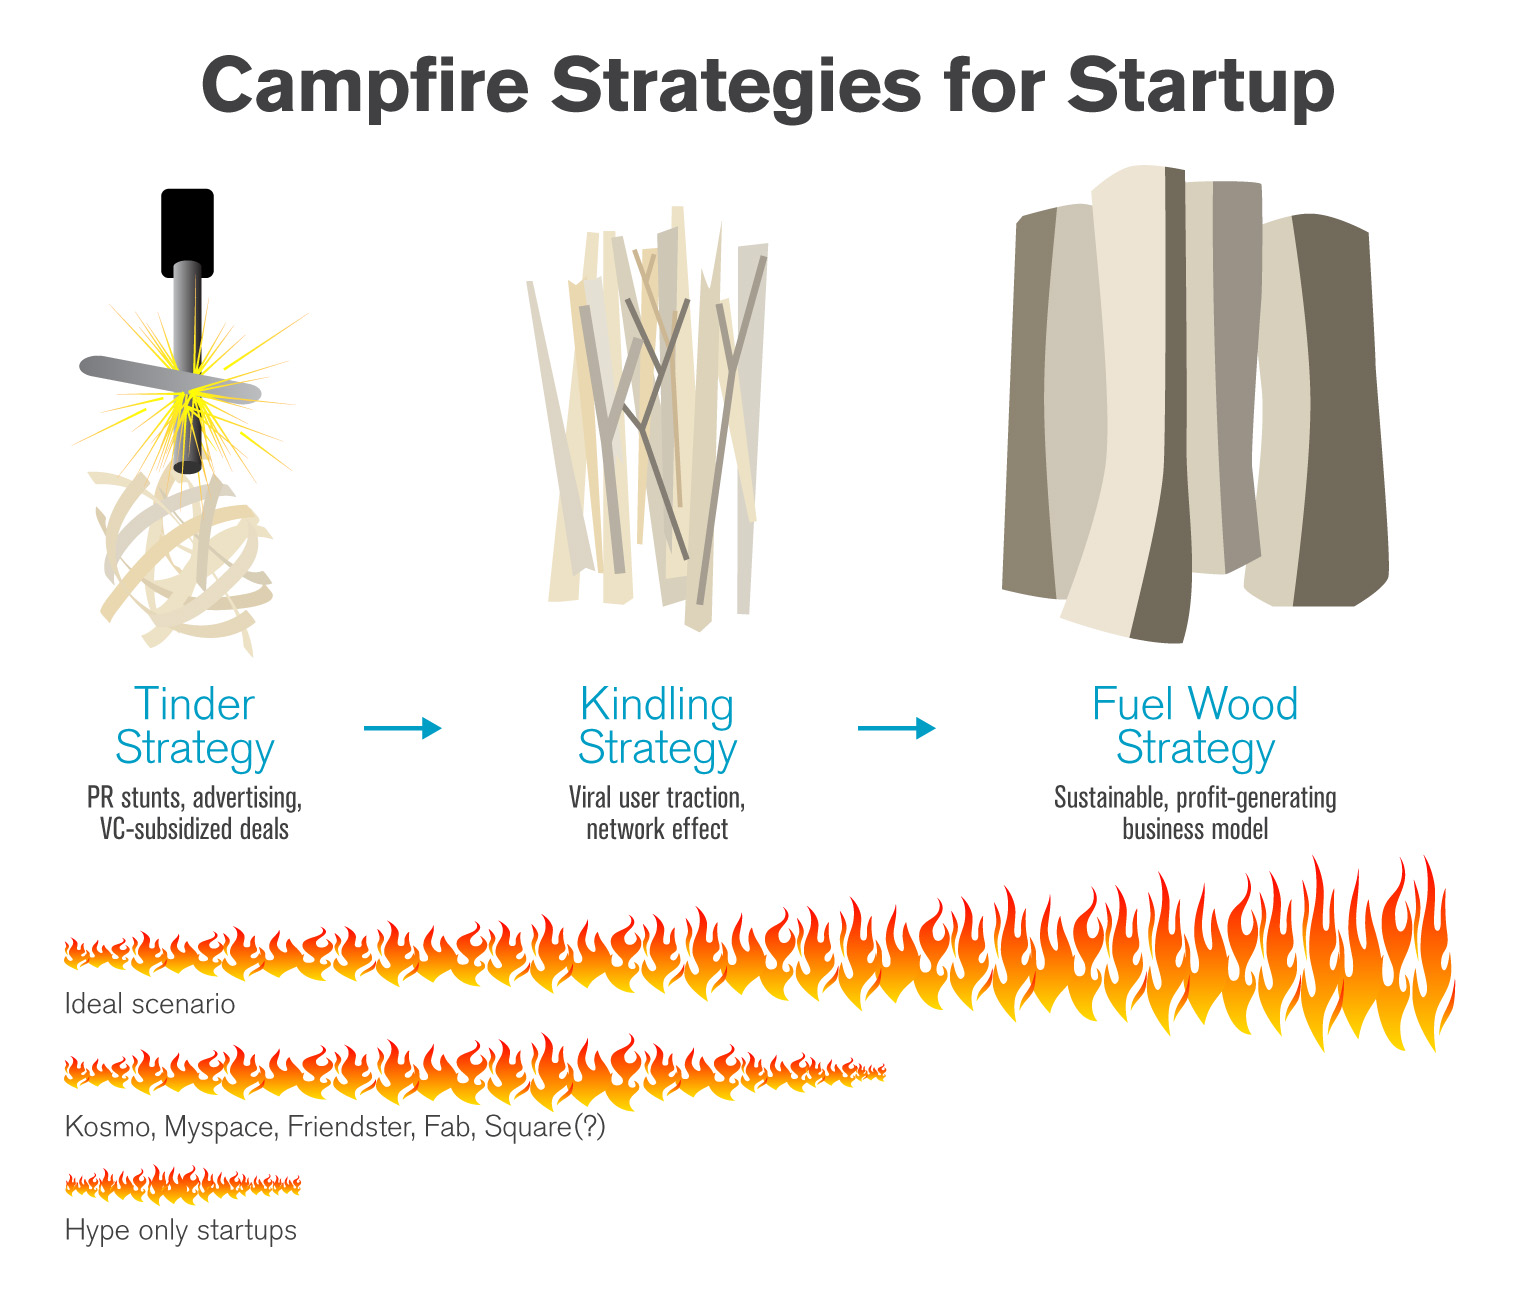 Campfire Strategies for Startup